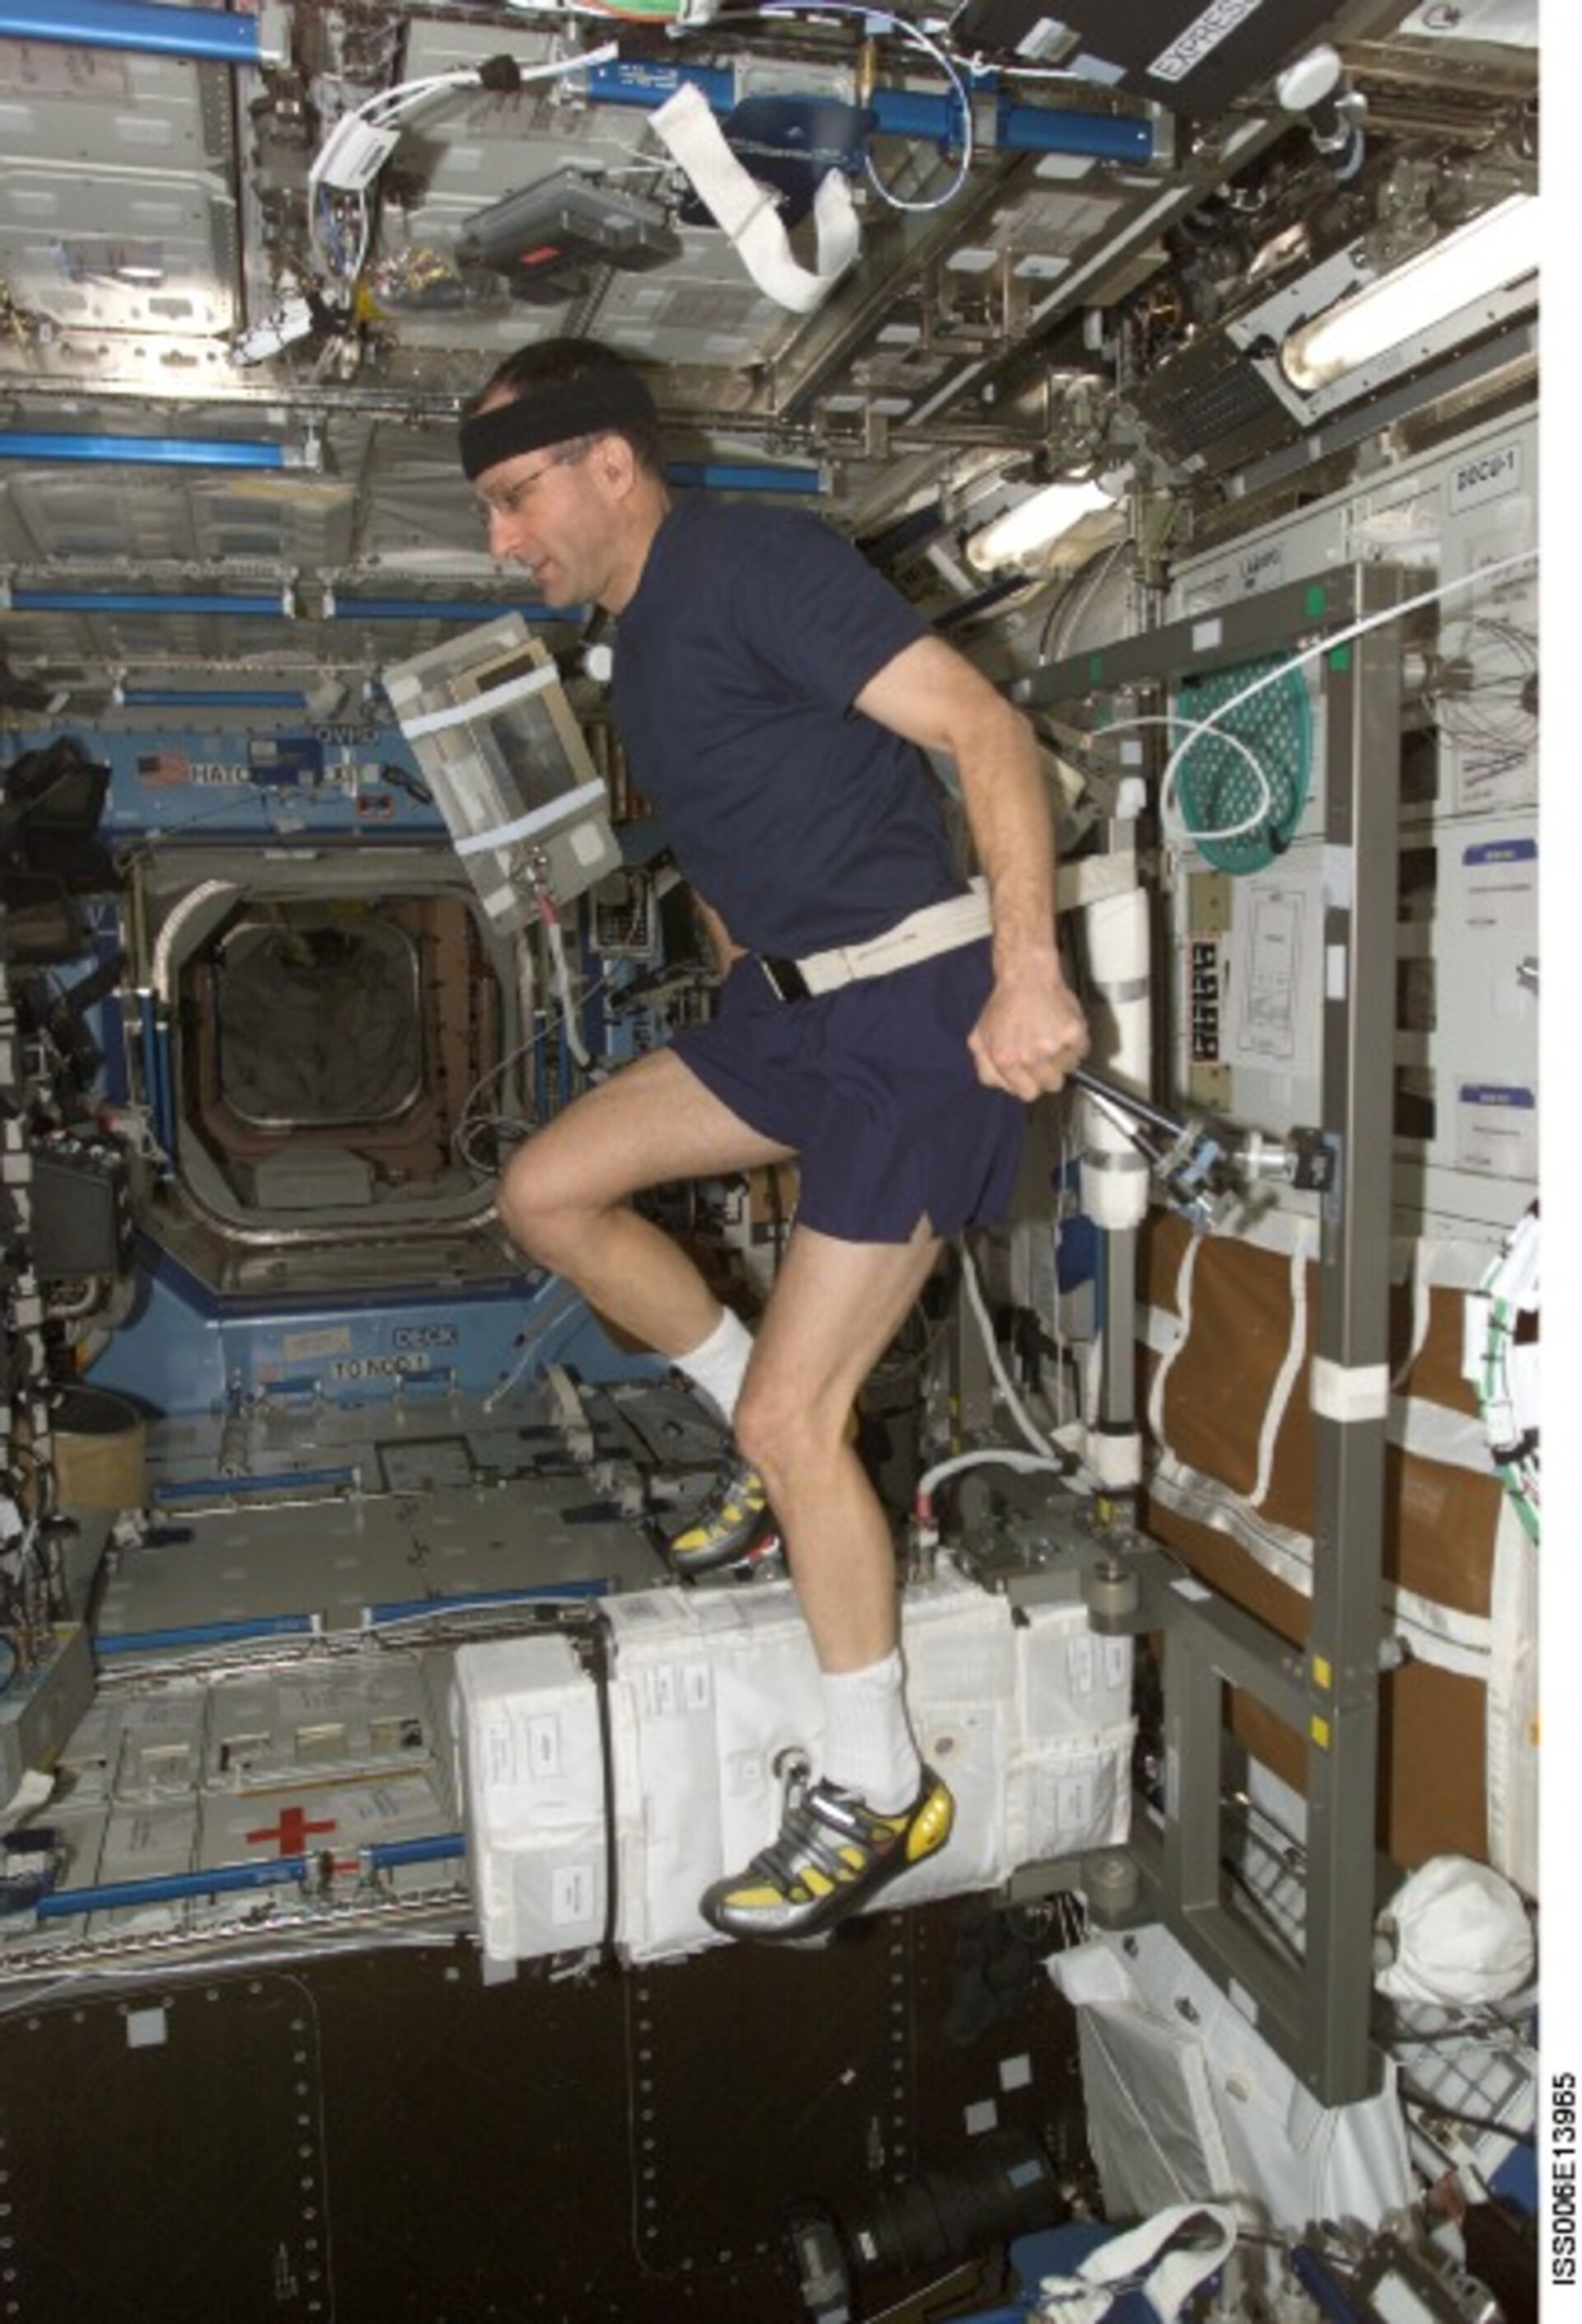 Using the exercise bike to counteract physiological effects of spaceflight